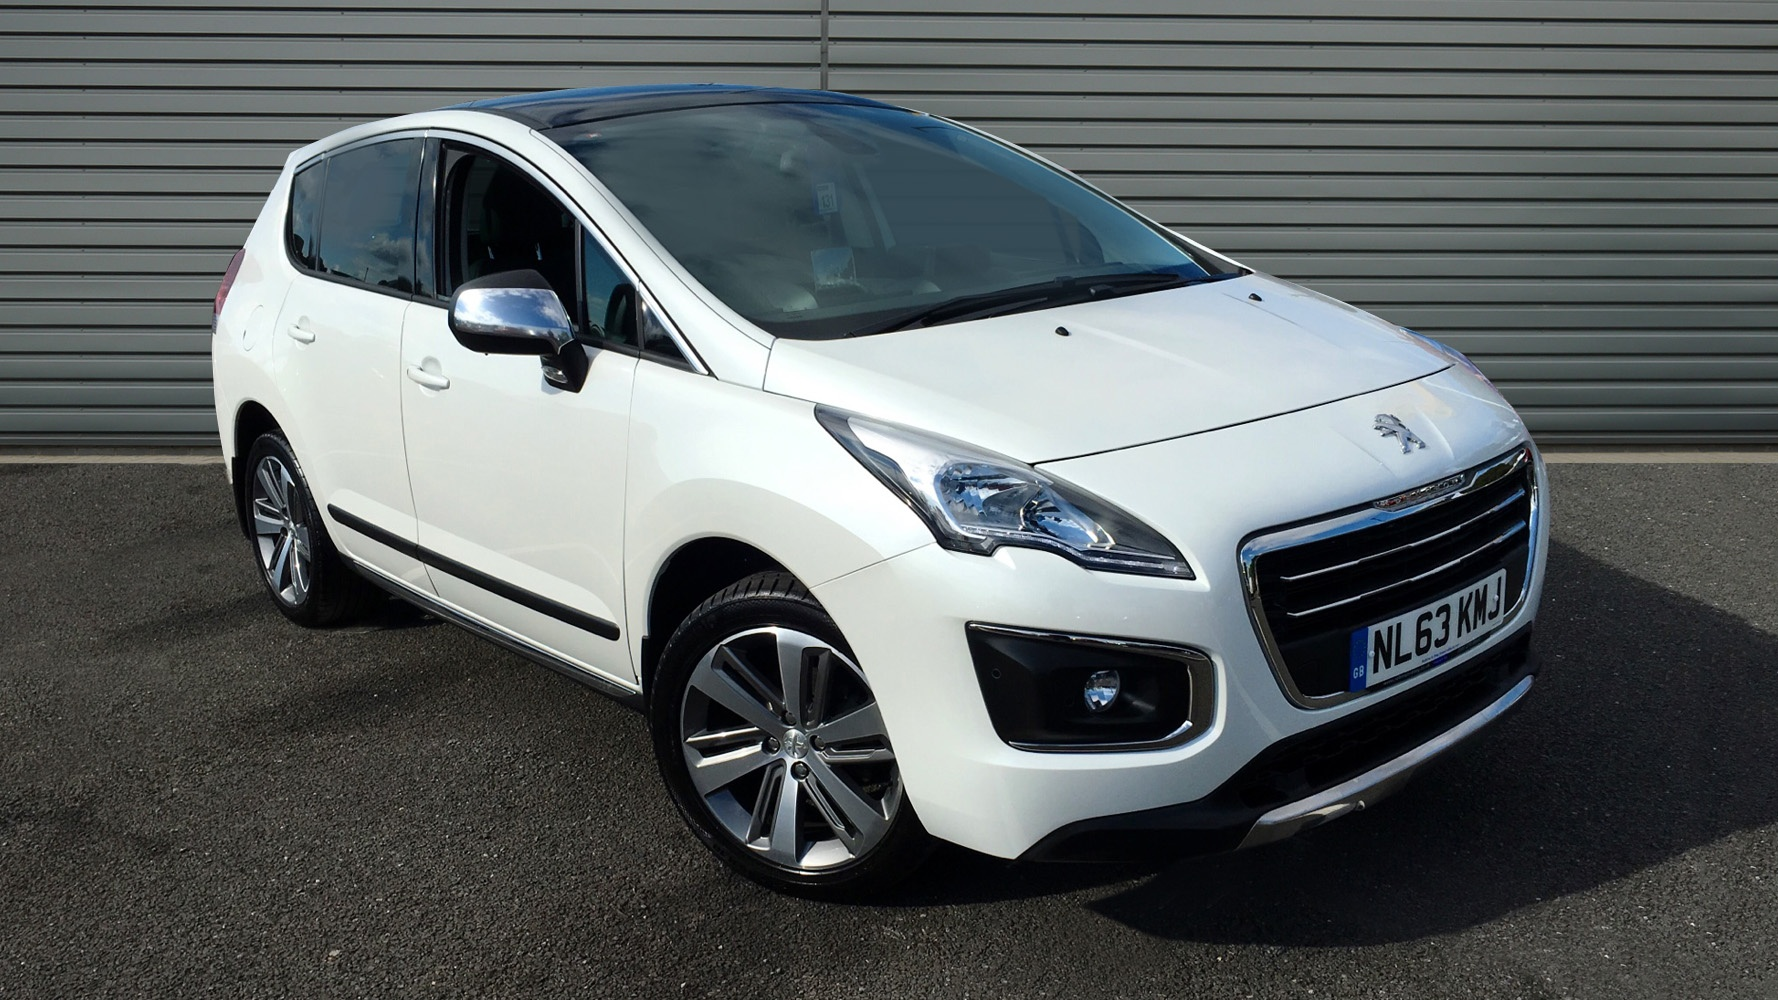 used peugeot 3008 hatchback 1 6 hdi fap allure 5dr 2013. Black Bedroom Furniture Sets. Home Design Ideas